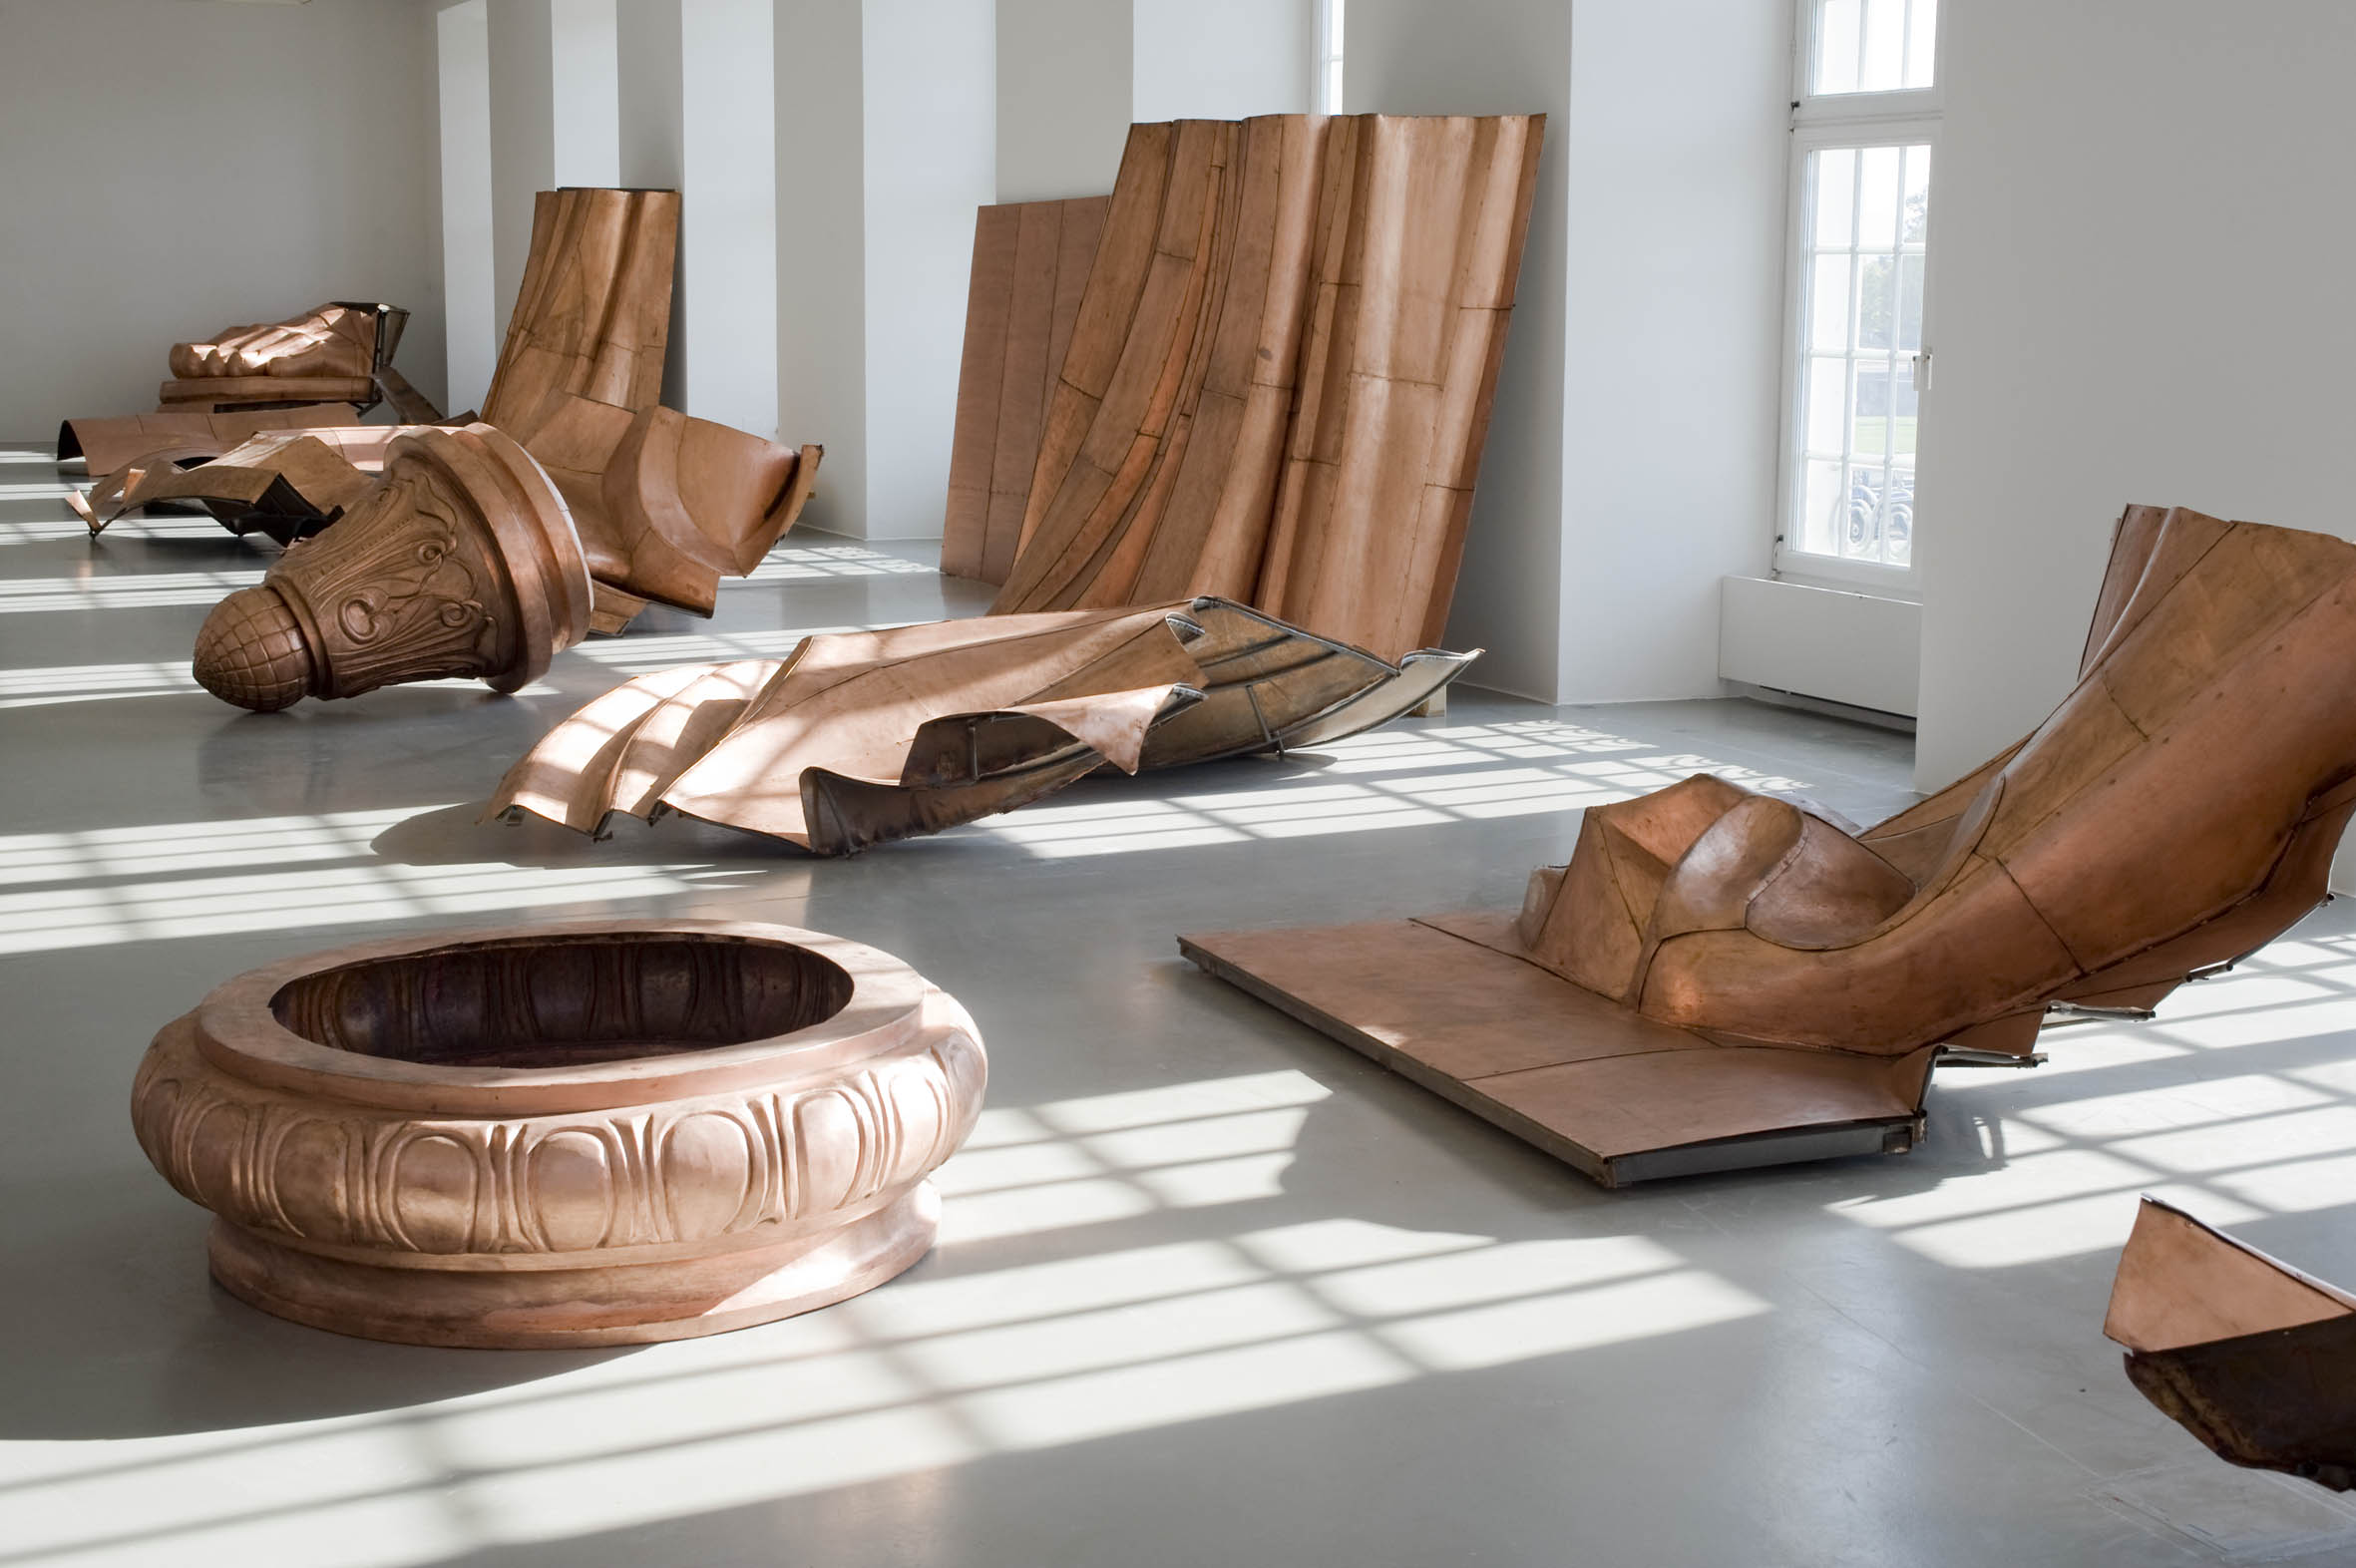 Danh_Vo_WE_THE_PEOPLE_Photo_Nils_Klinger_Fridericianum_01.jpg